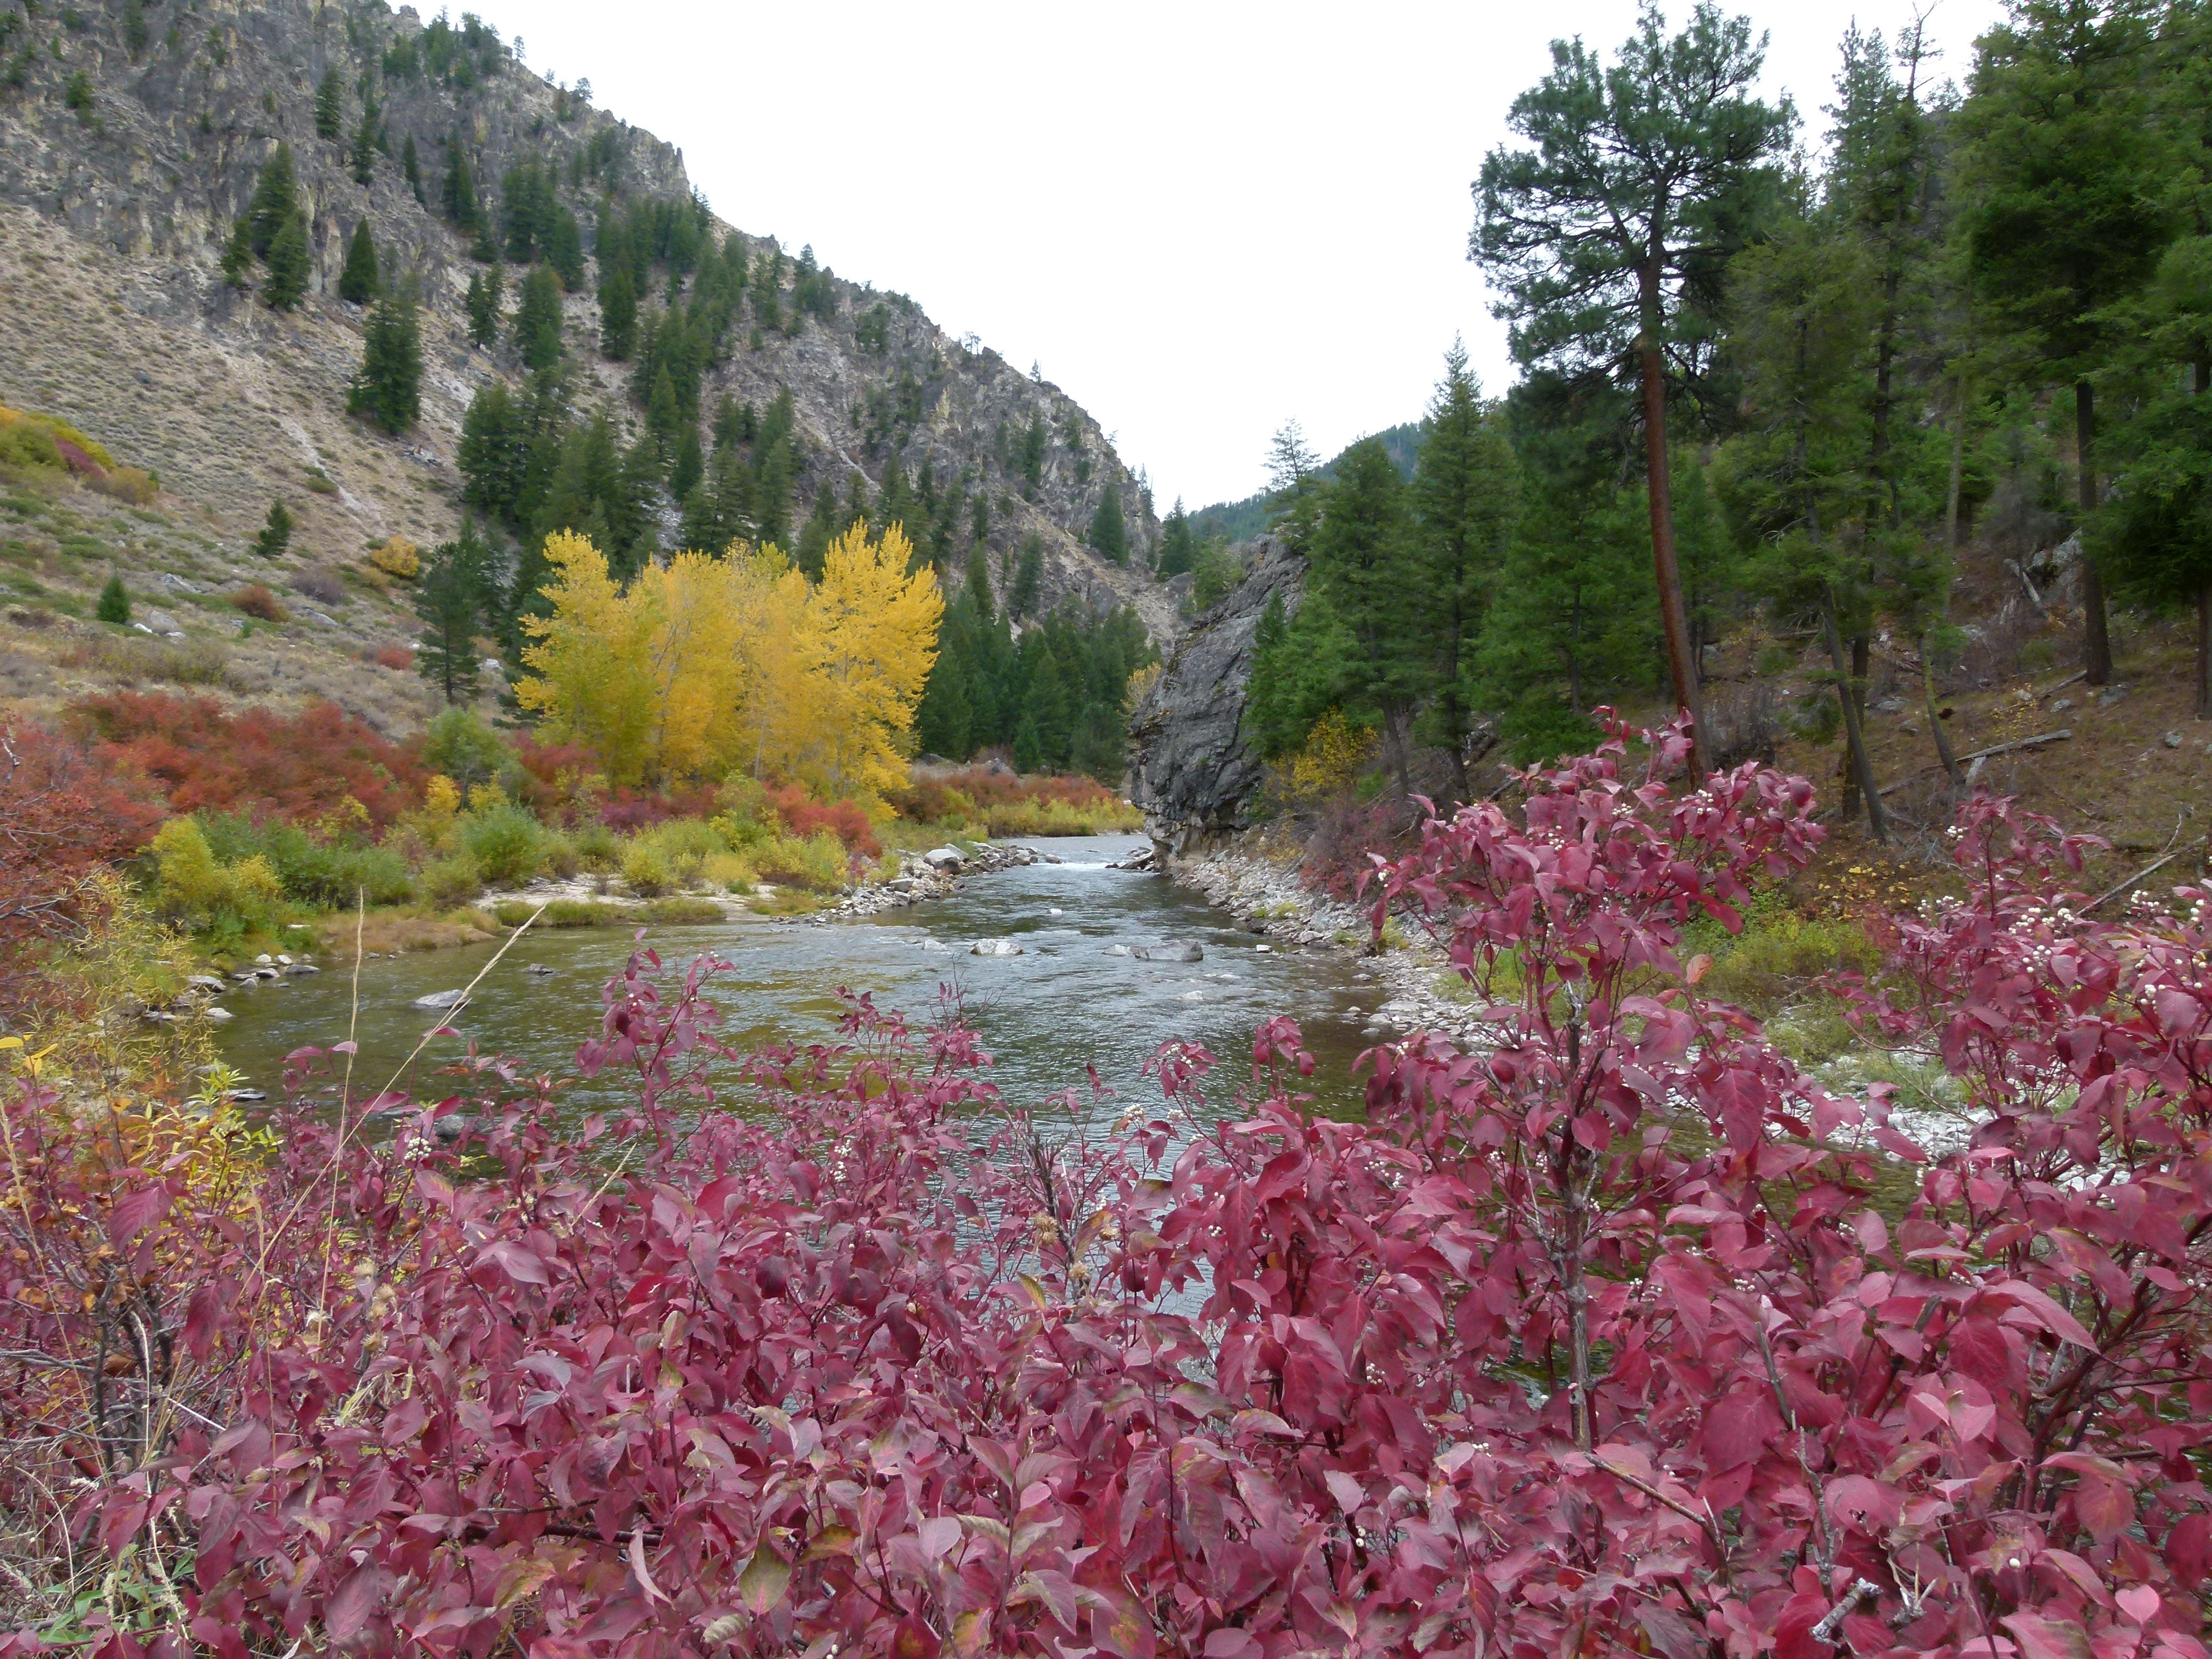 South fork of Boise River Oct. 2011